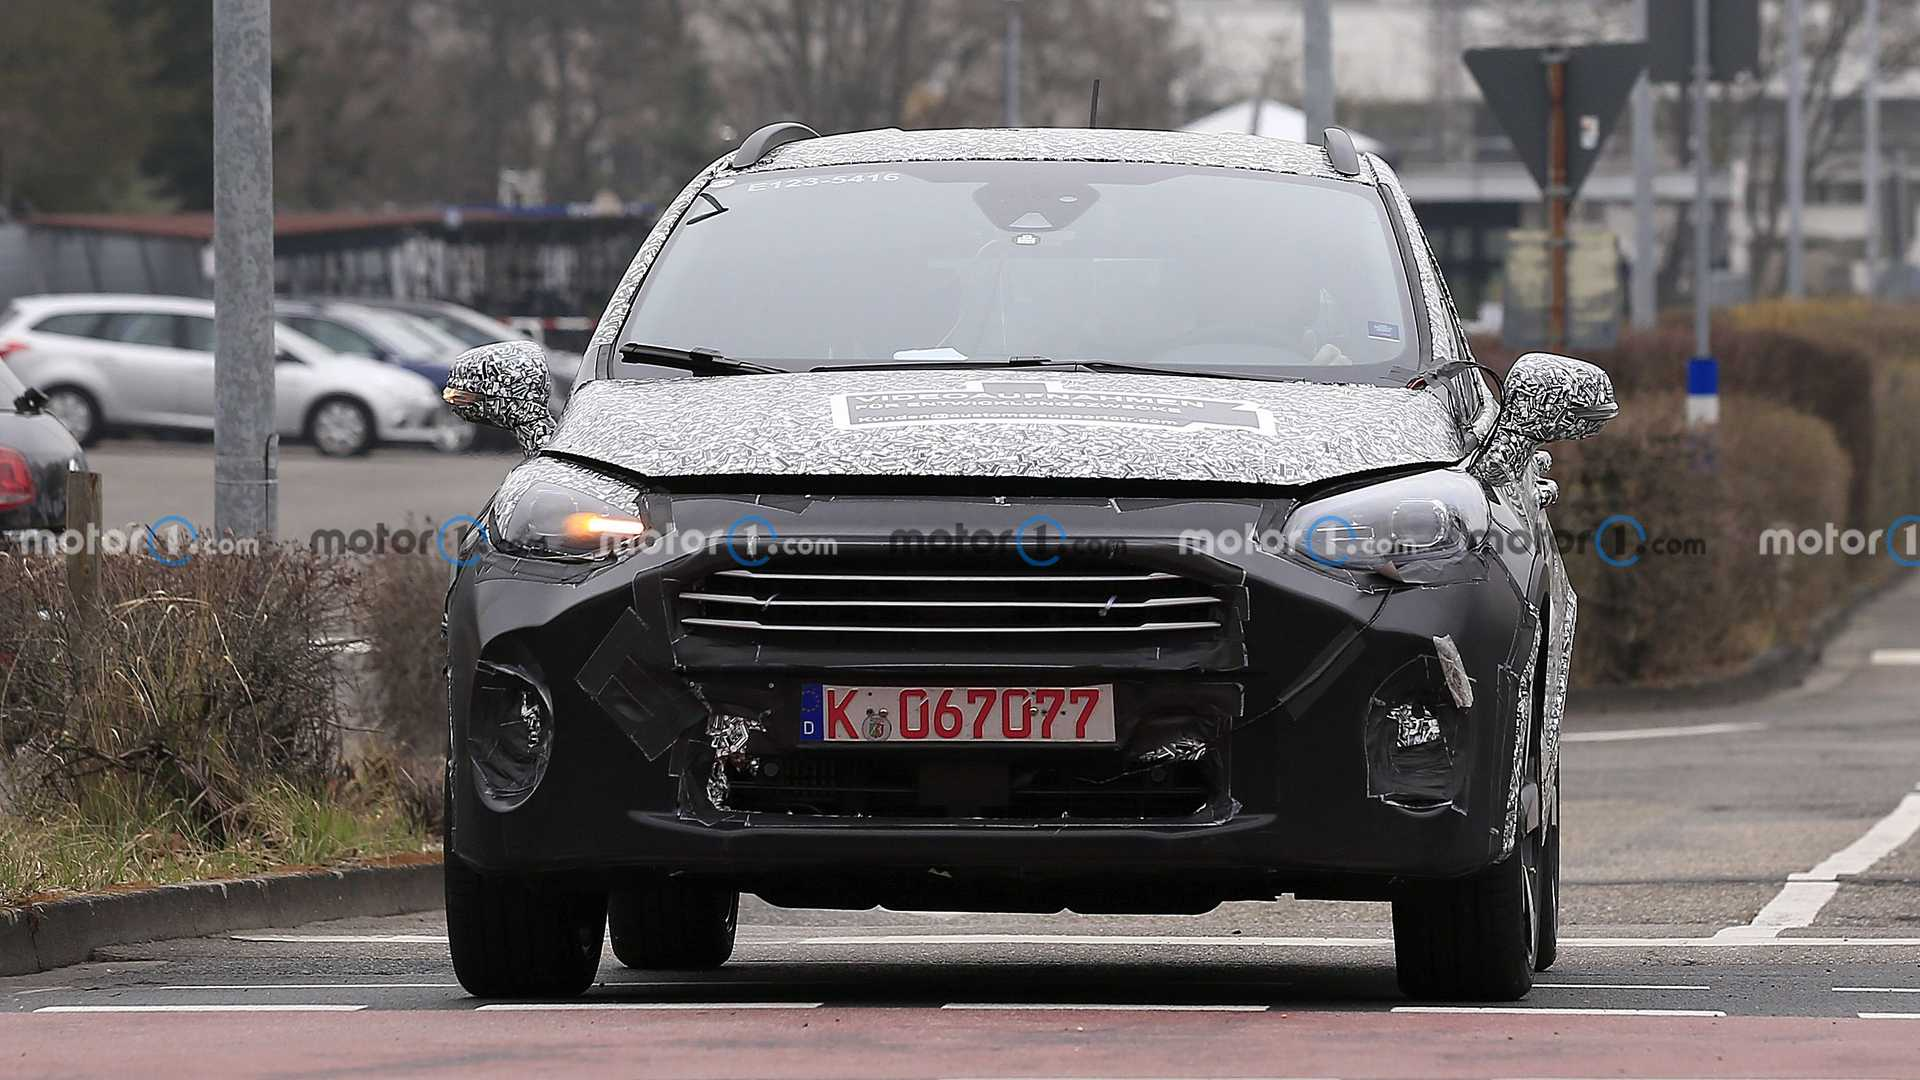 Ford Fiesta facelift first spy photo (front)